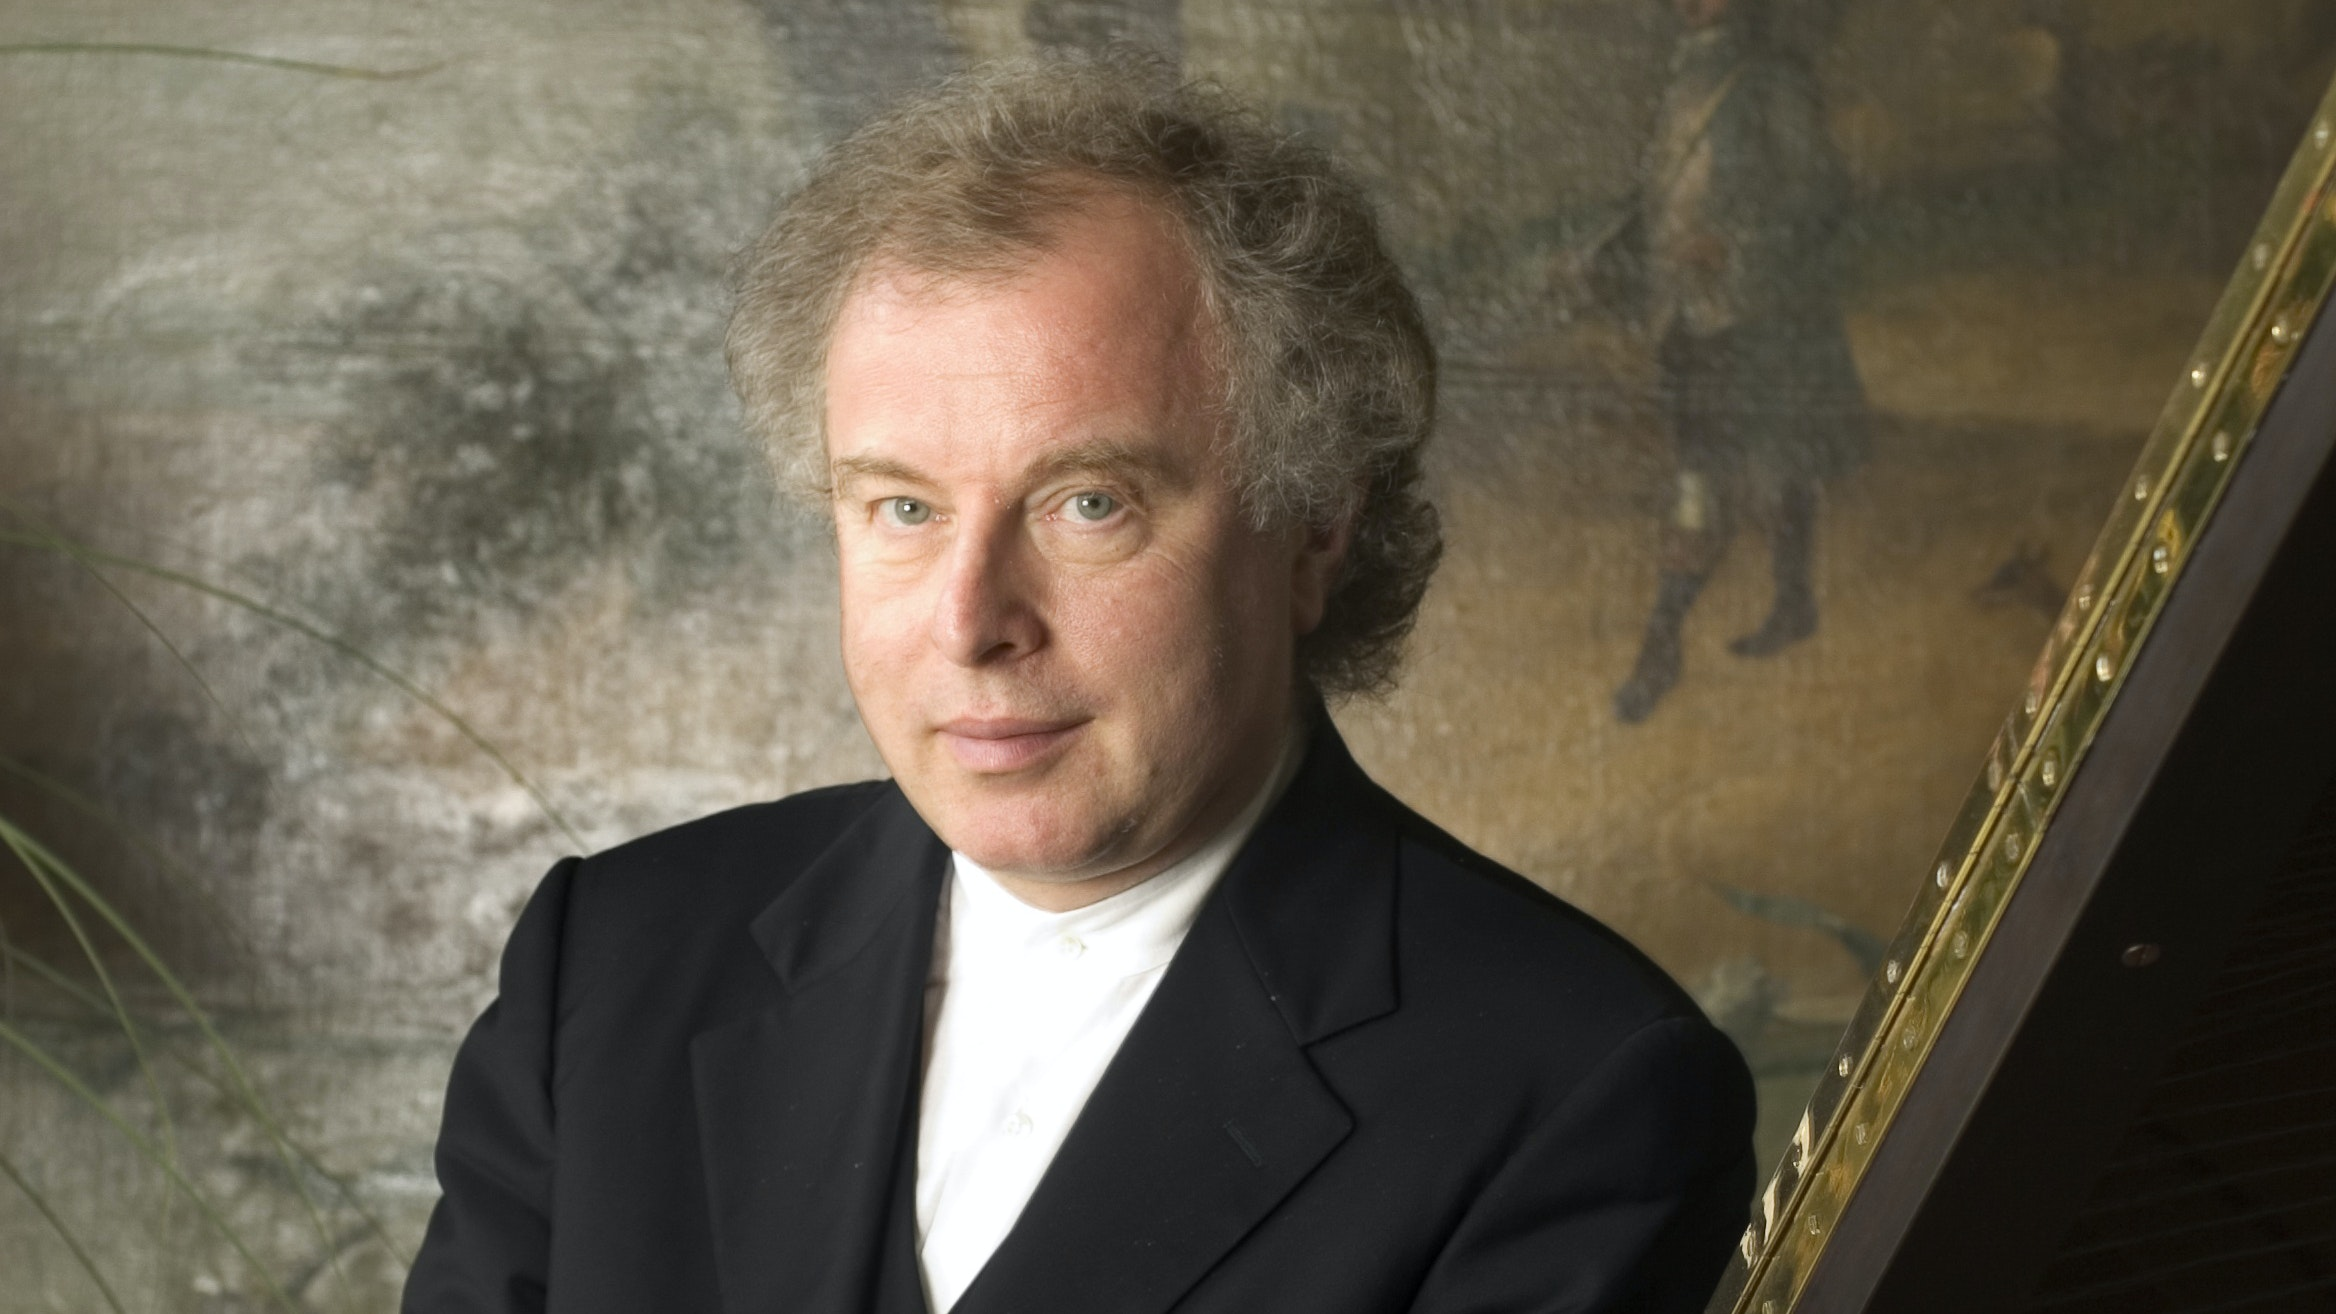 András Schiff conducts and performs Bach, Haydn, and Beethoven